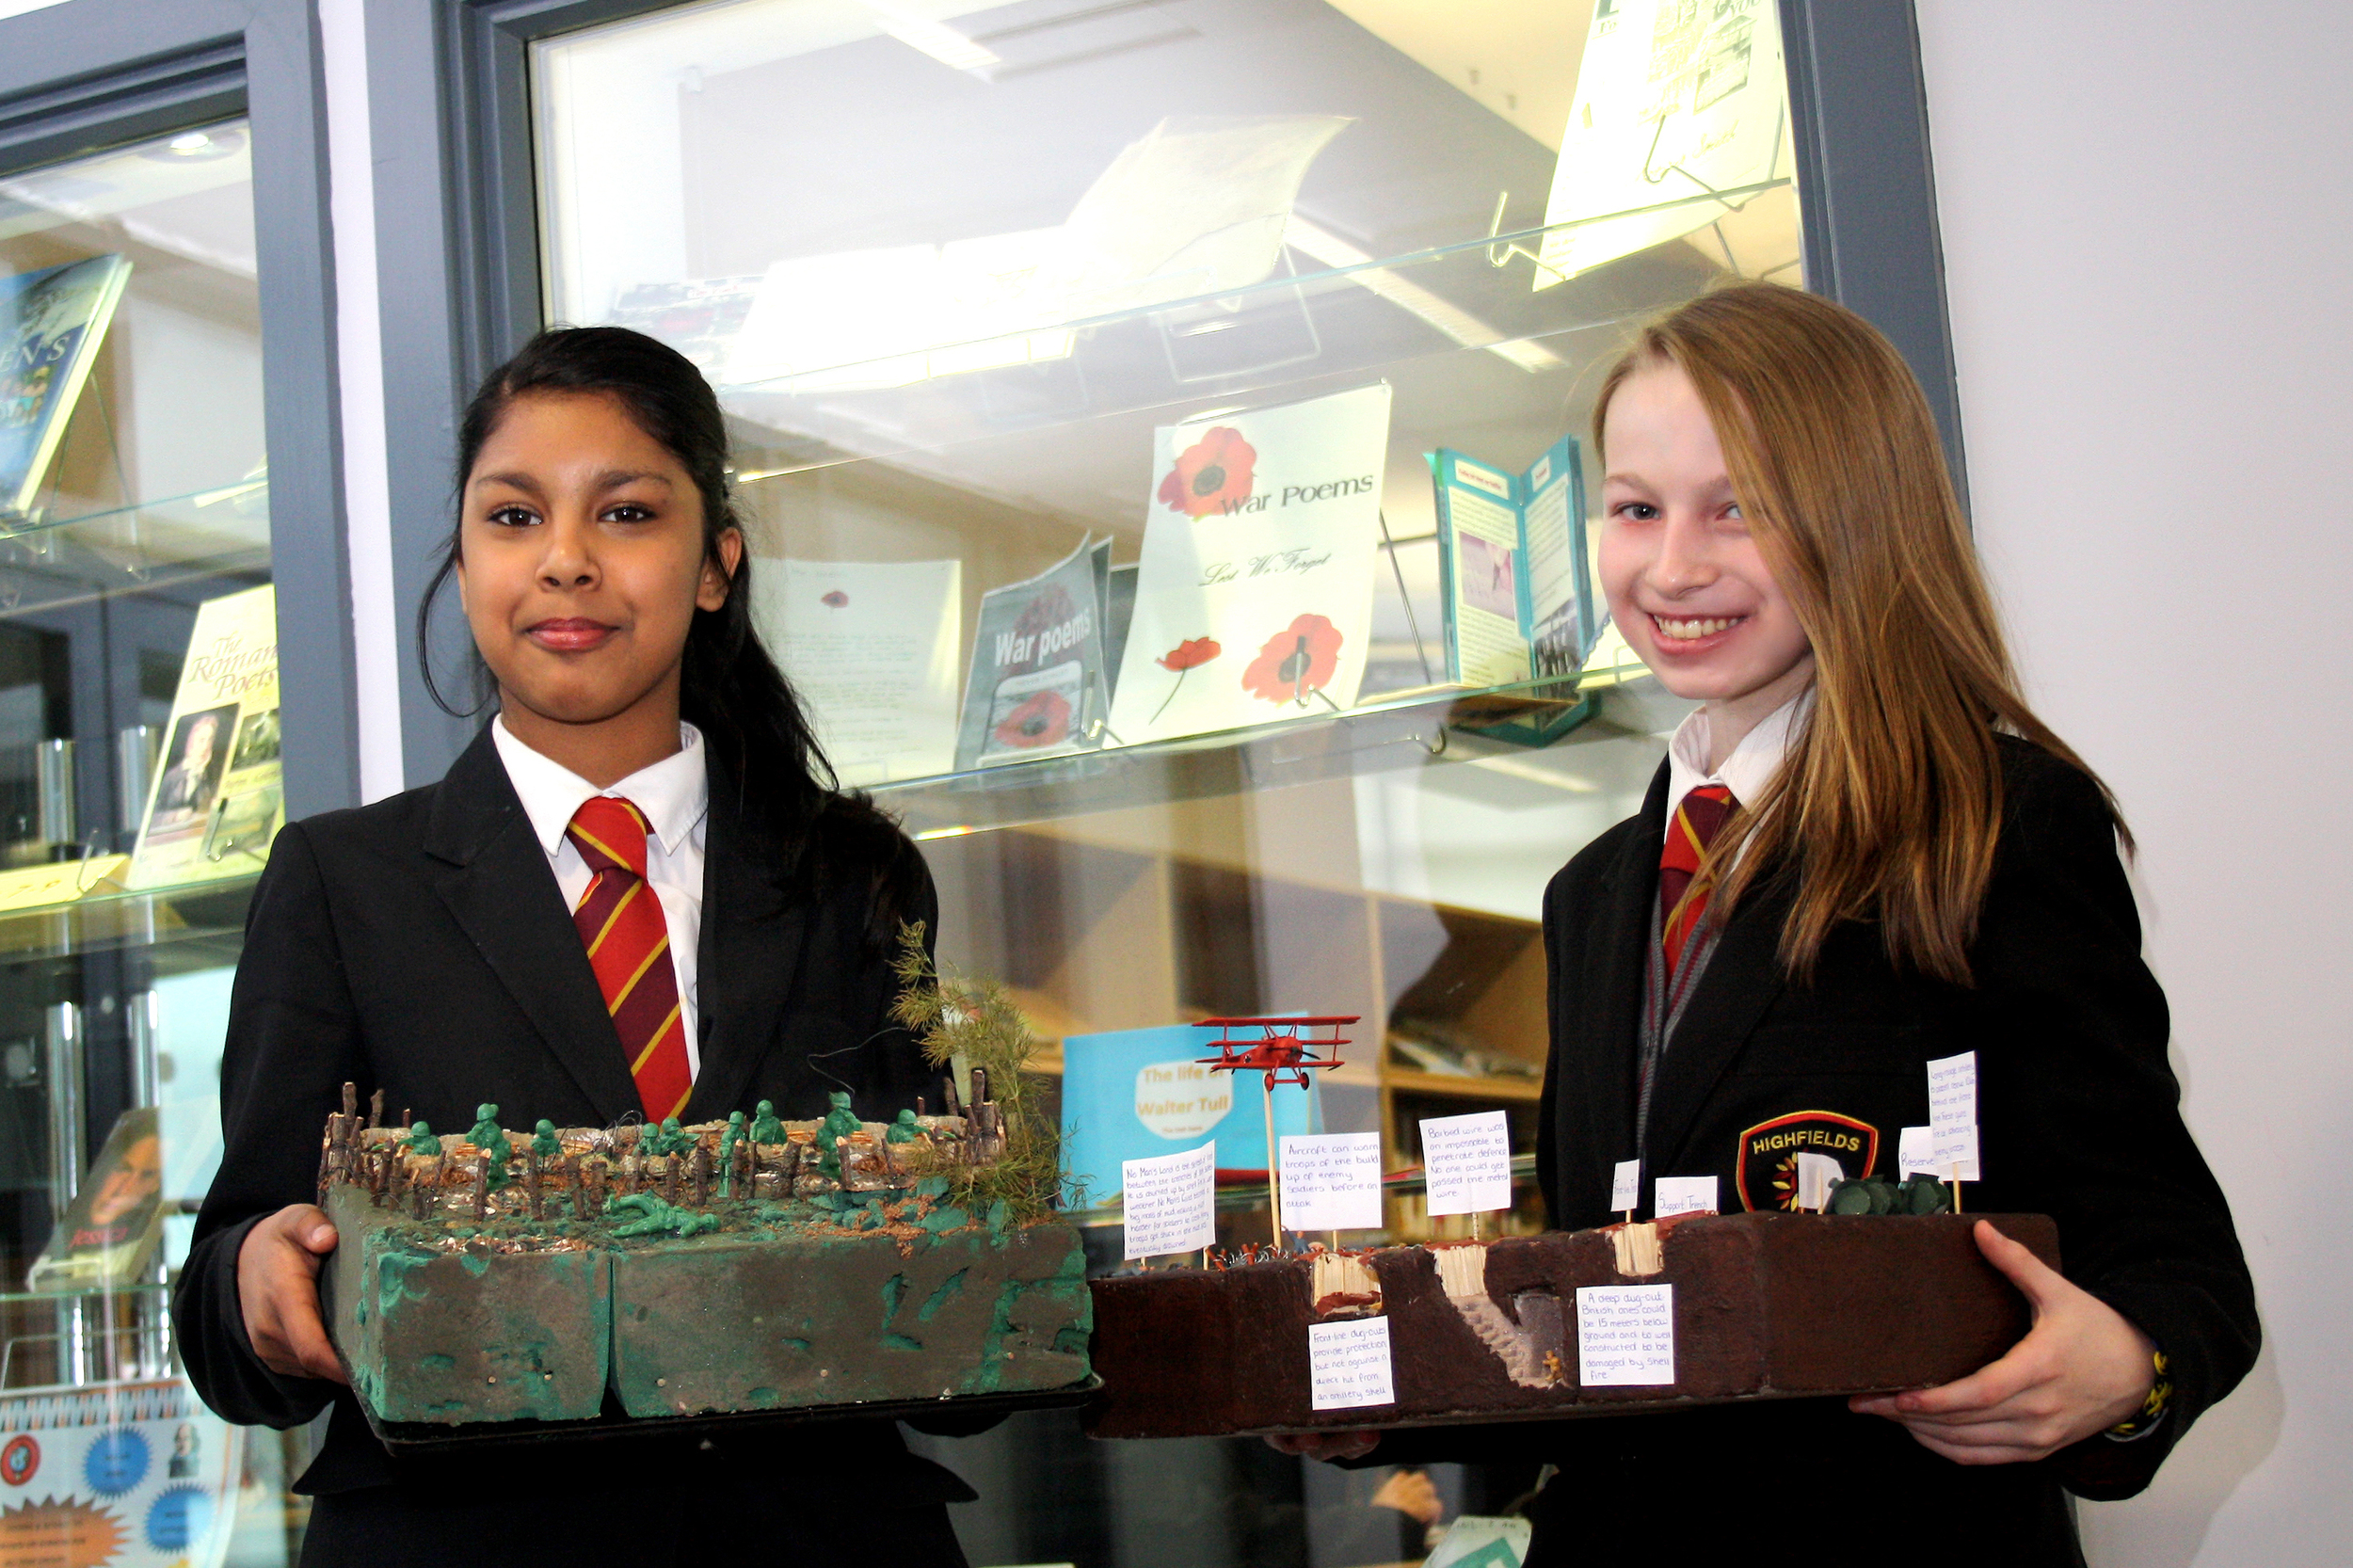 Reshma Rahman and Danielle Grimley with their fantastic models.